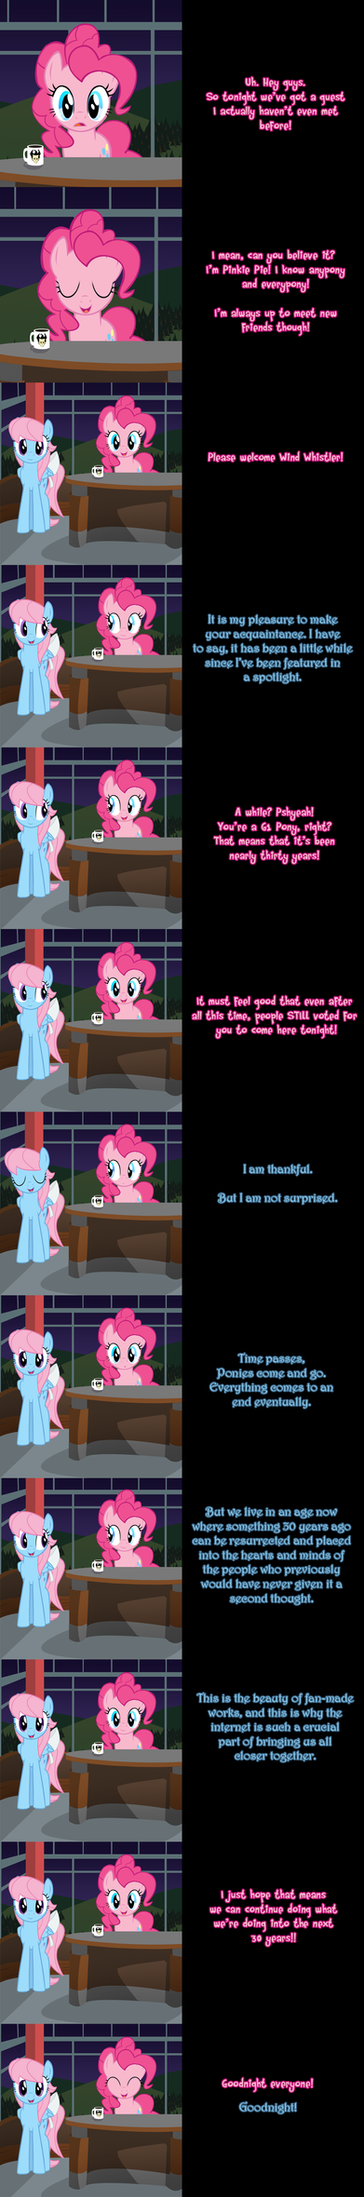 Pinkie Says Goodnight - Wise Wind Whistler by Undead-Niklos